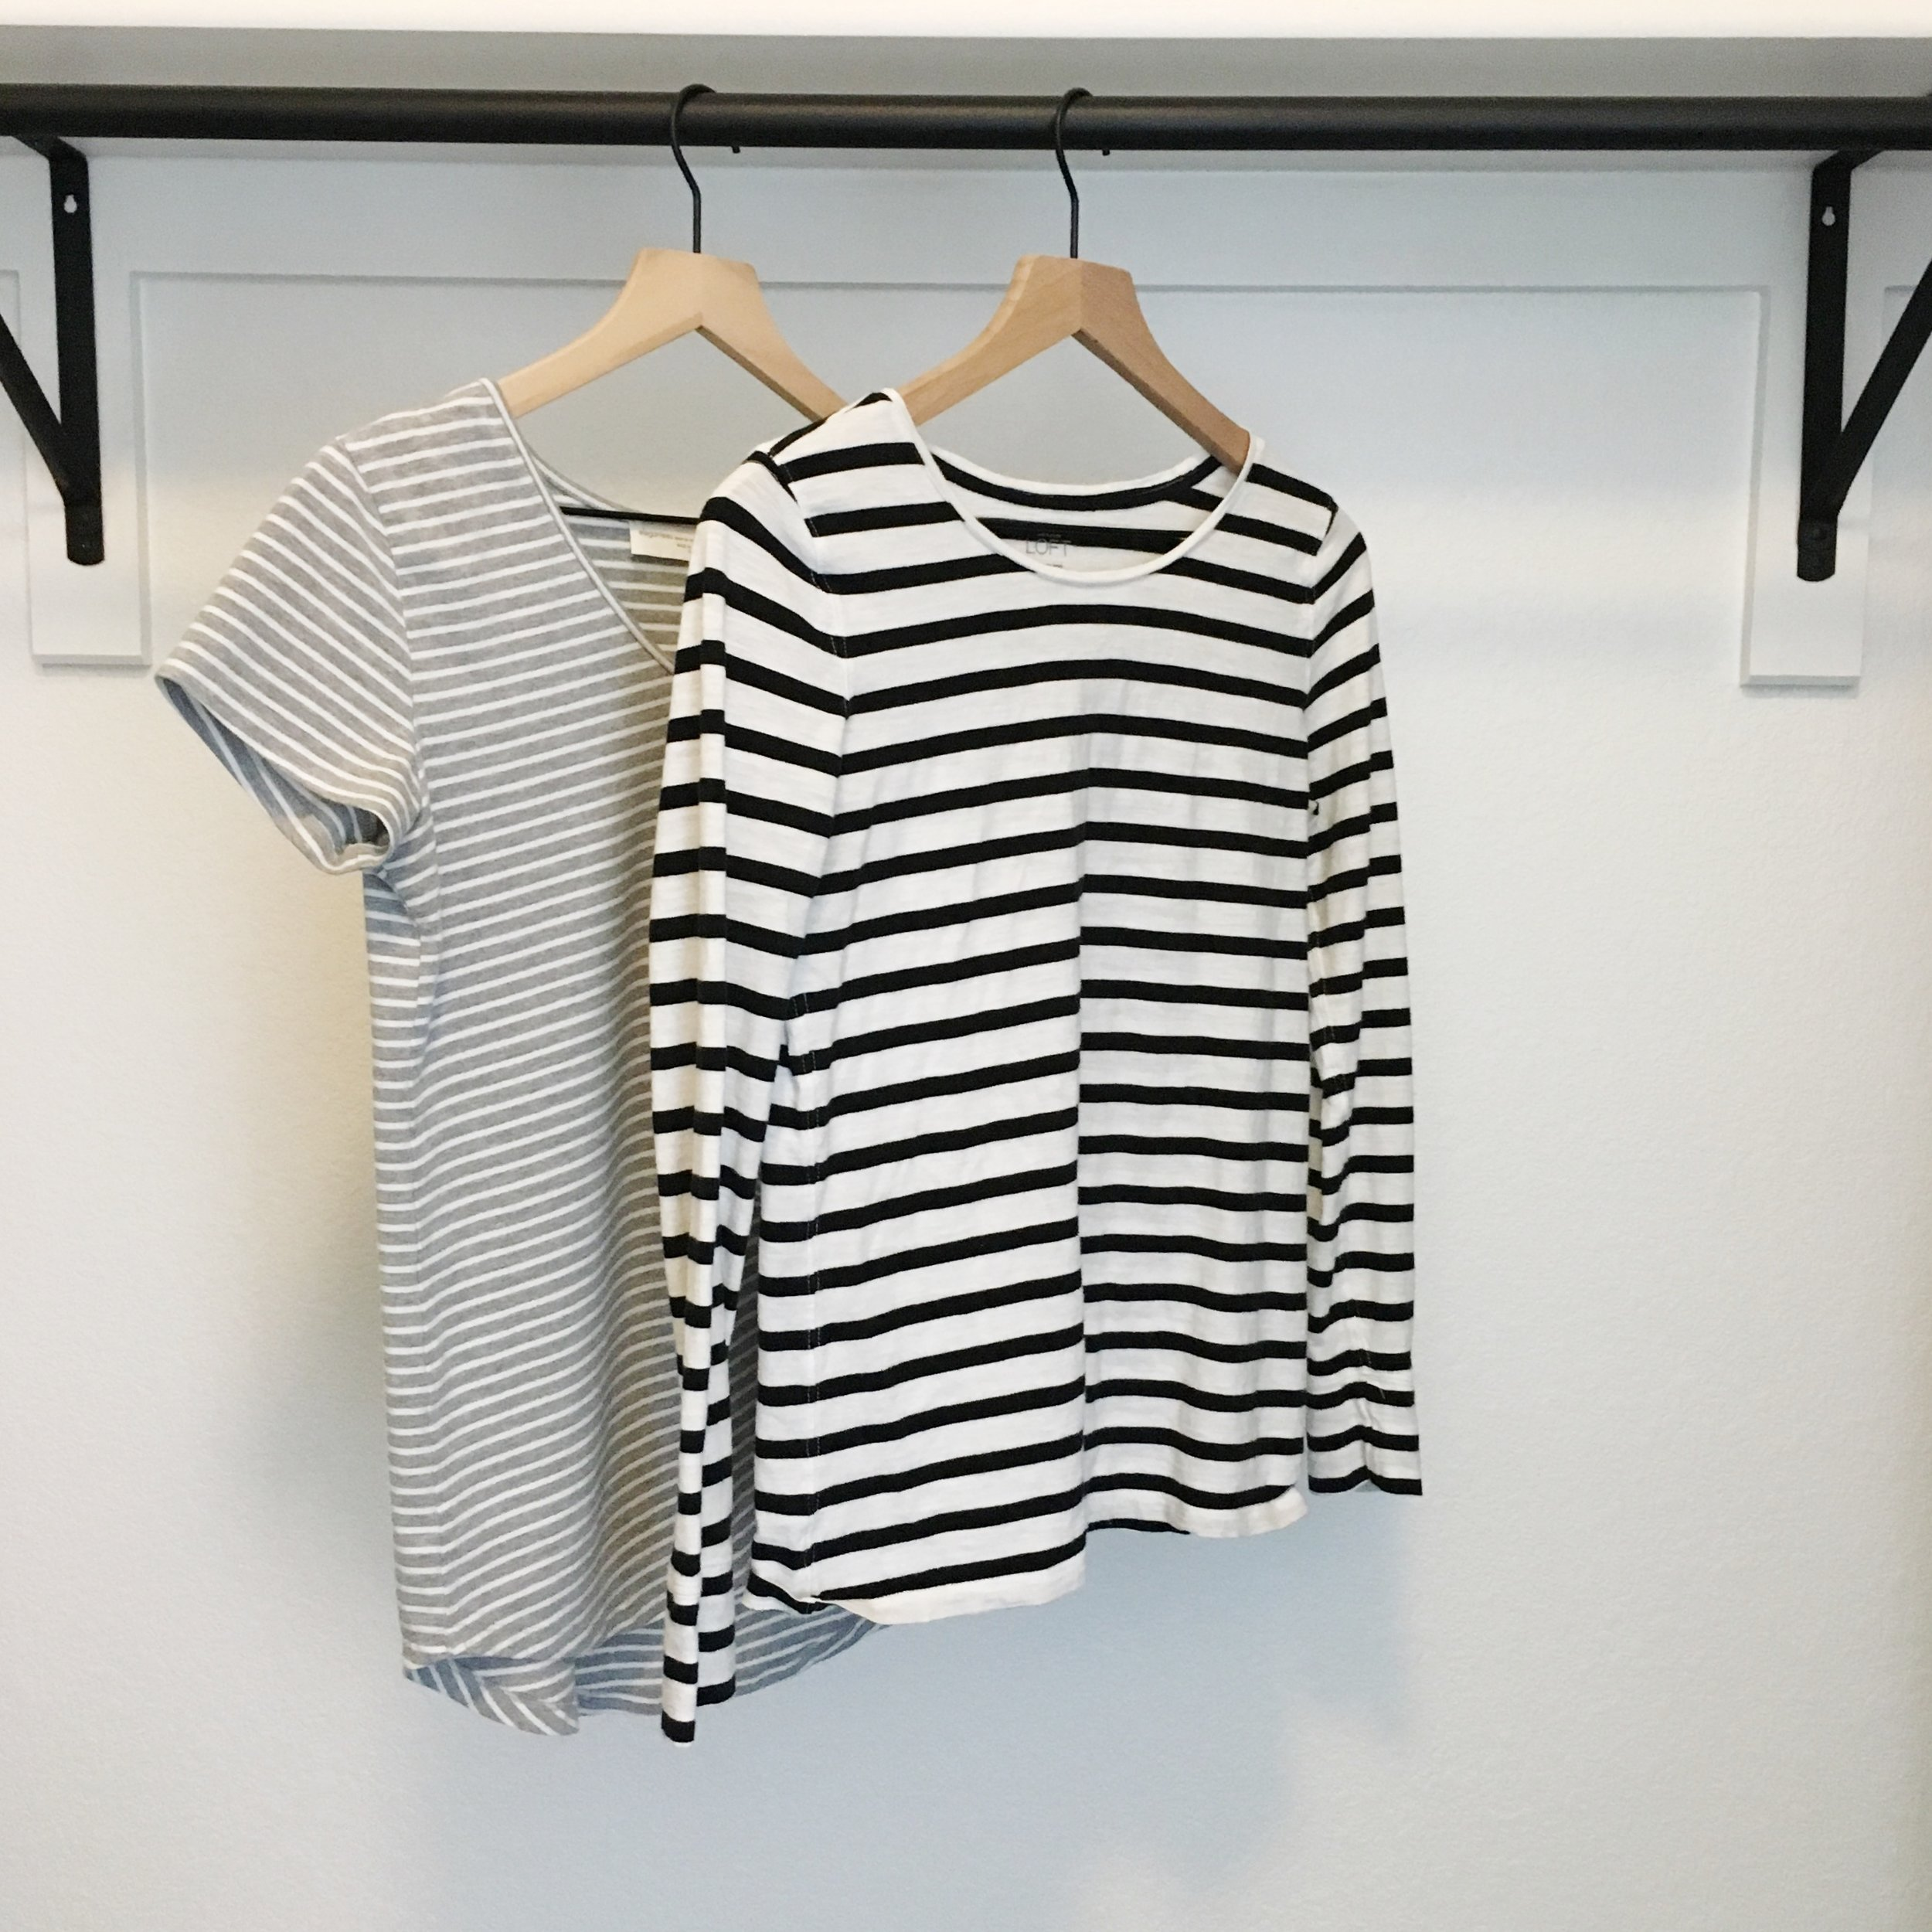 Ethical brands; striped classic style